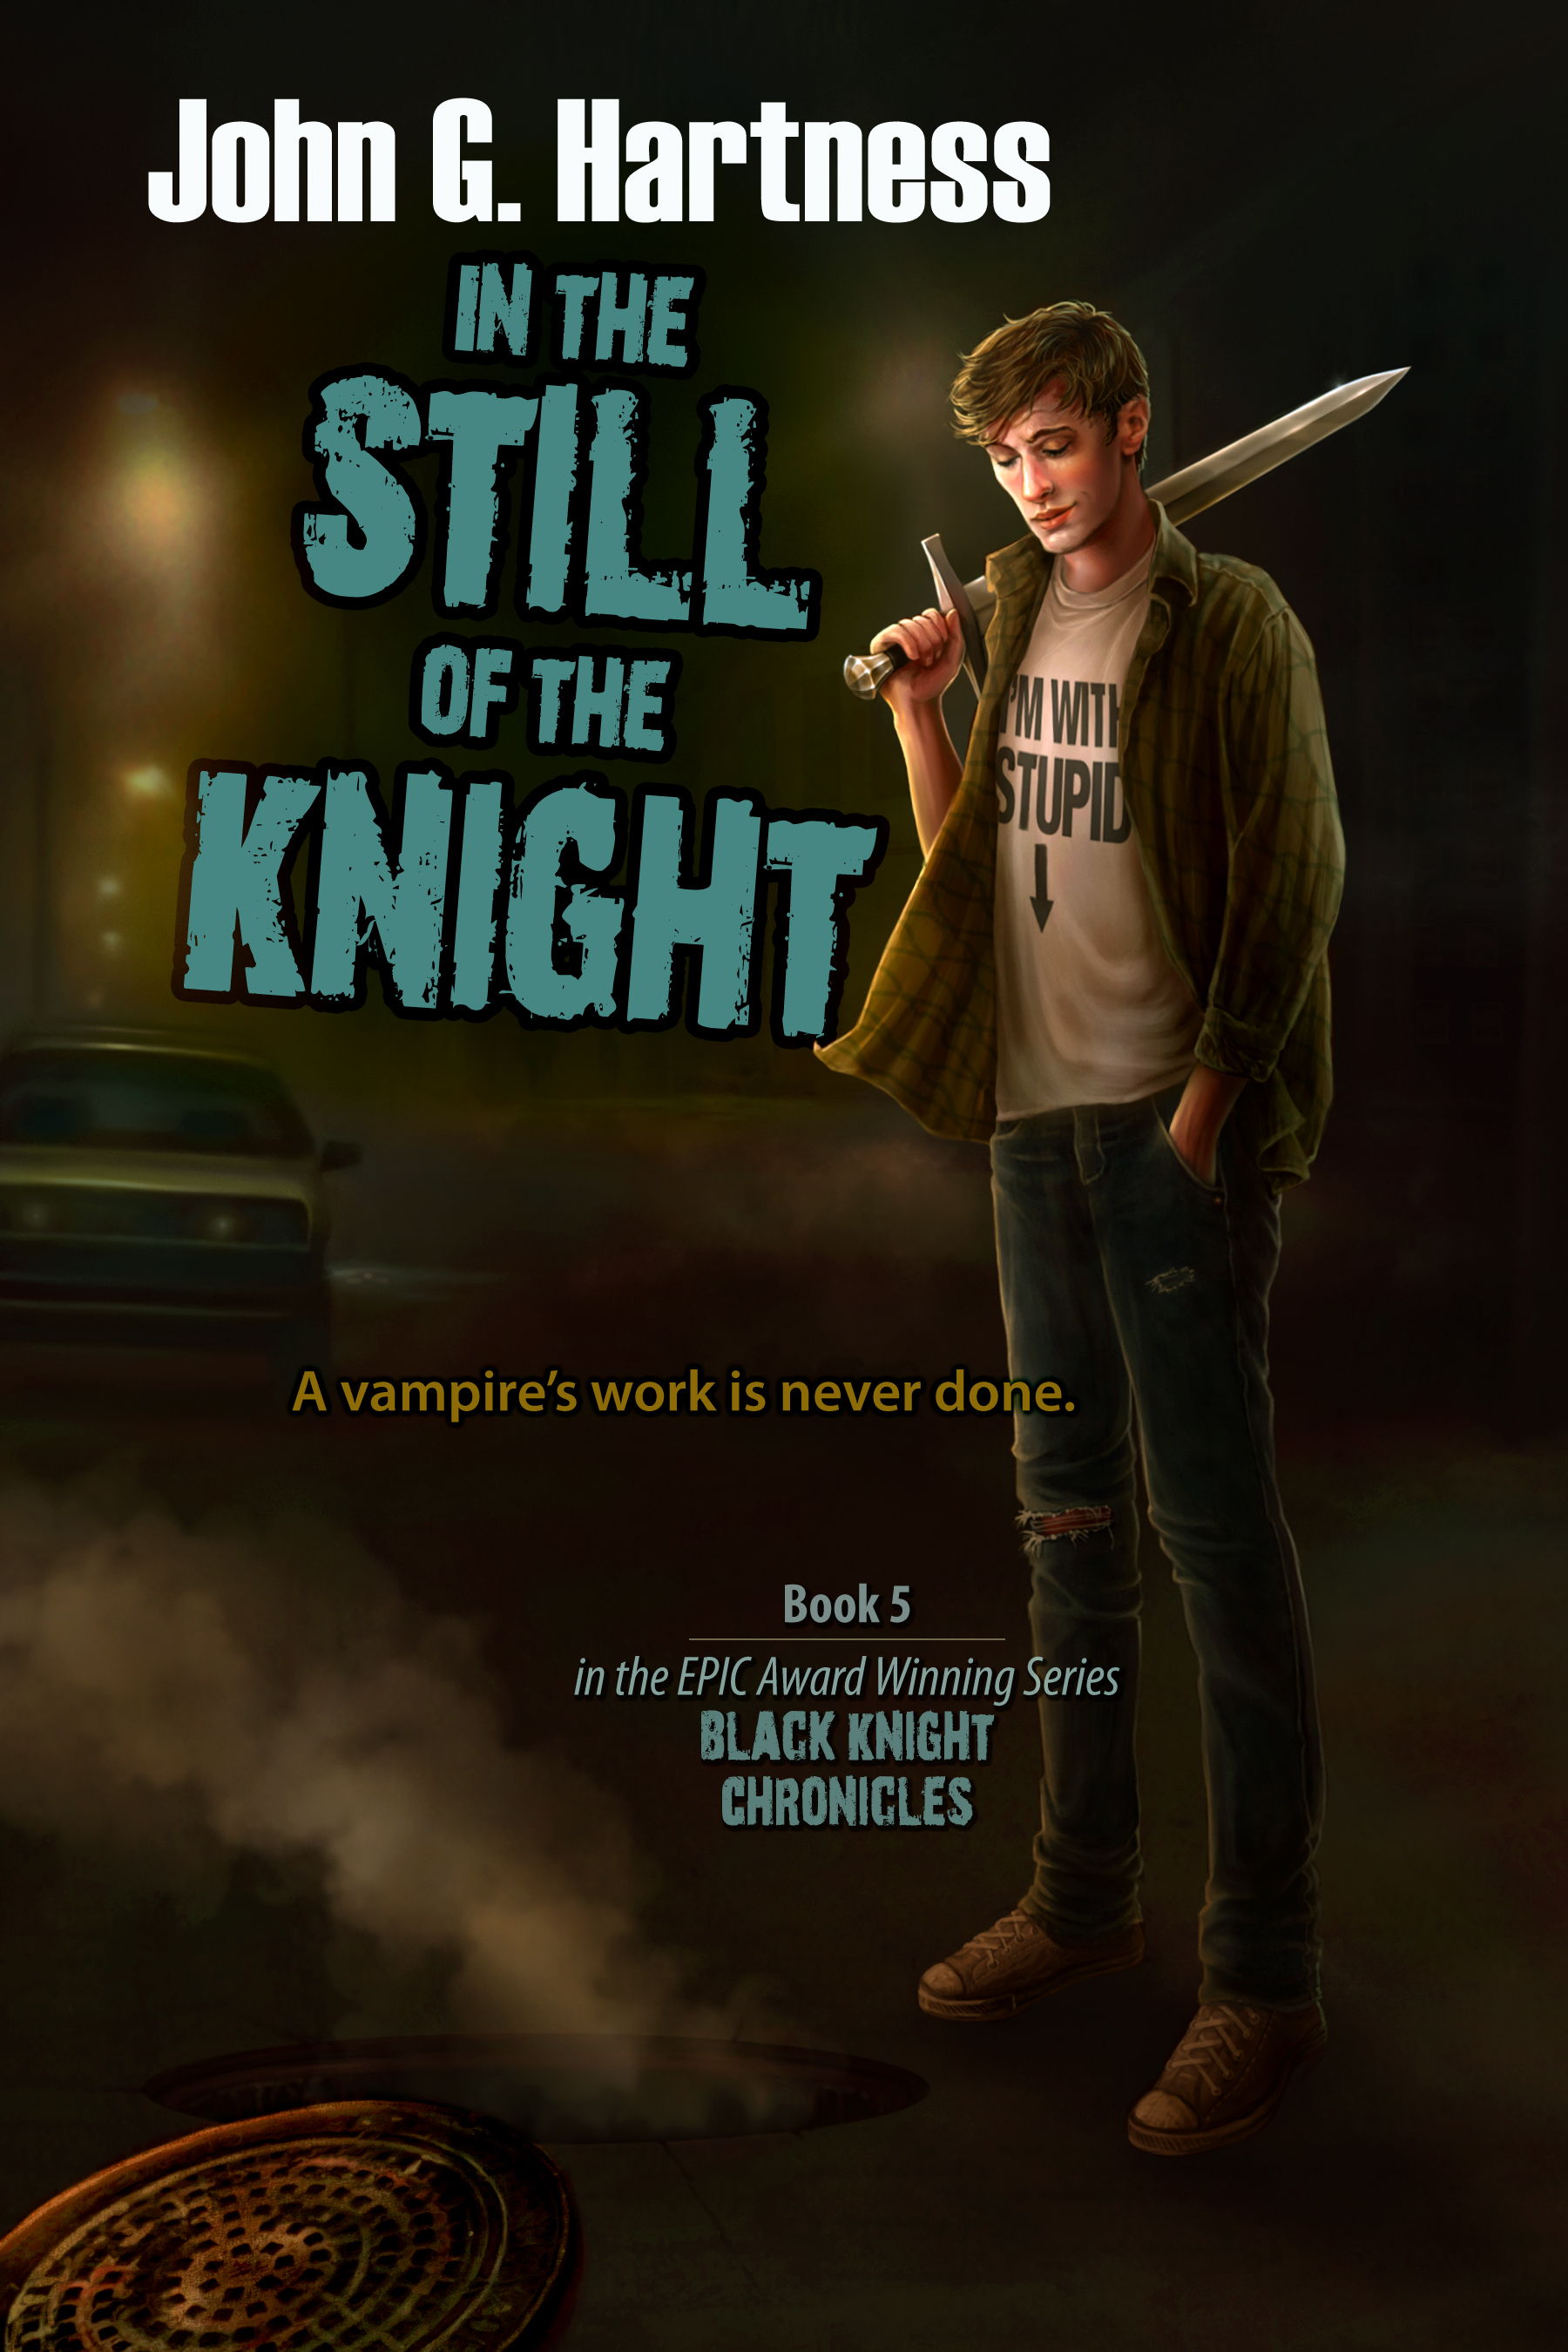 John G. Hartness: Five Things I Learned Writing In The Still Of The Knight